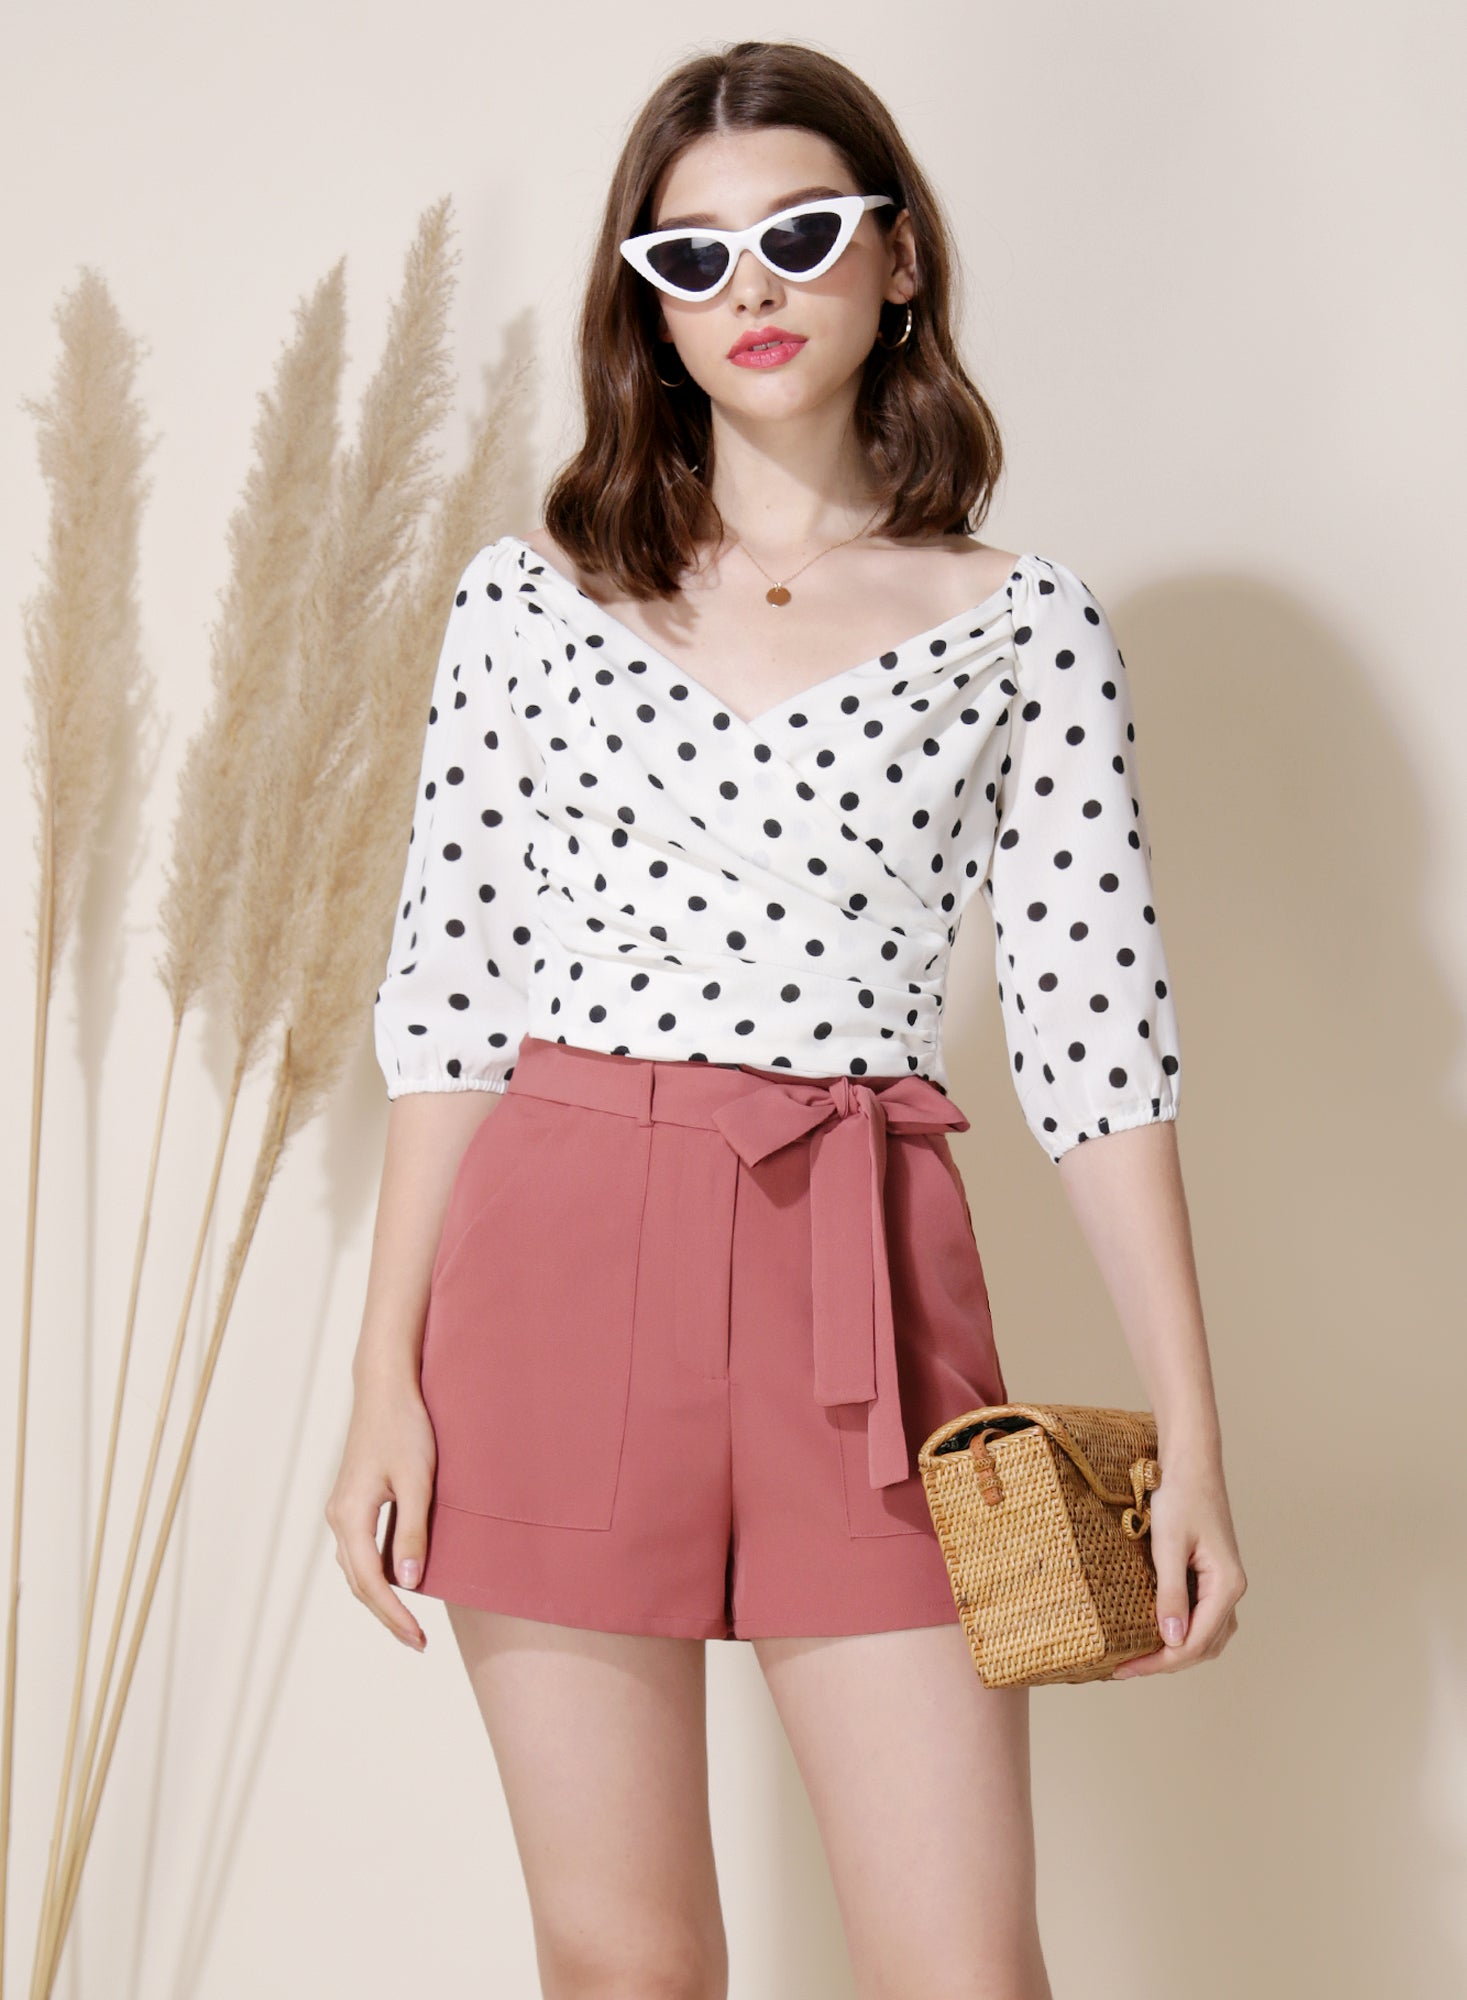 Amour Polka Dot Wrap Top (White) at $ 35.50 only sold at And Well Dressed Online Fashion Store Singapore